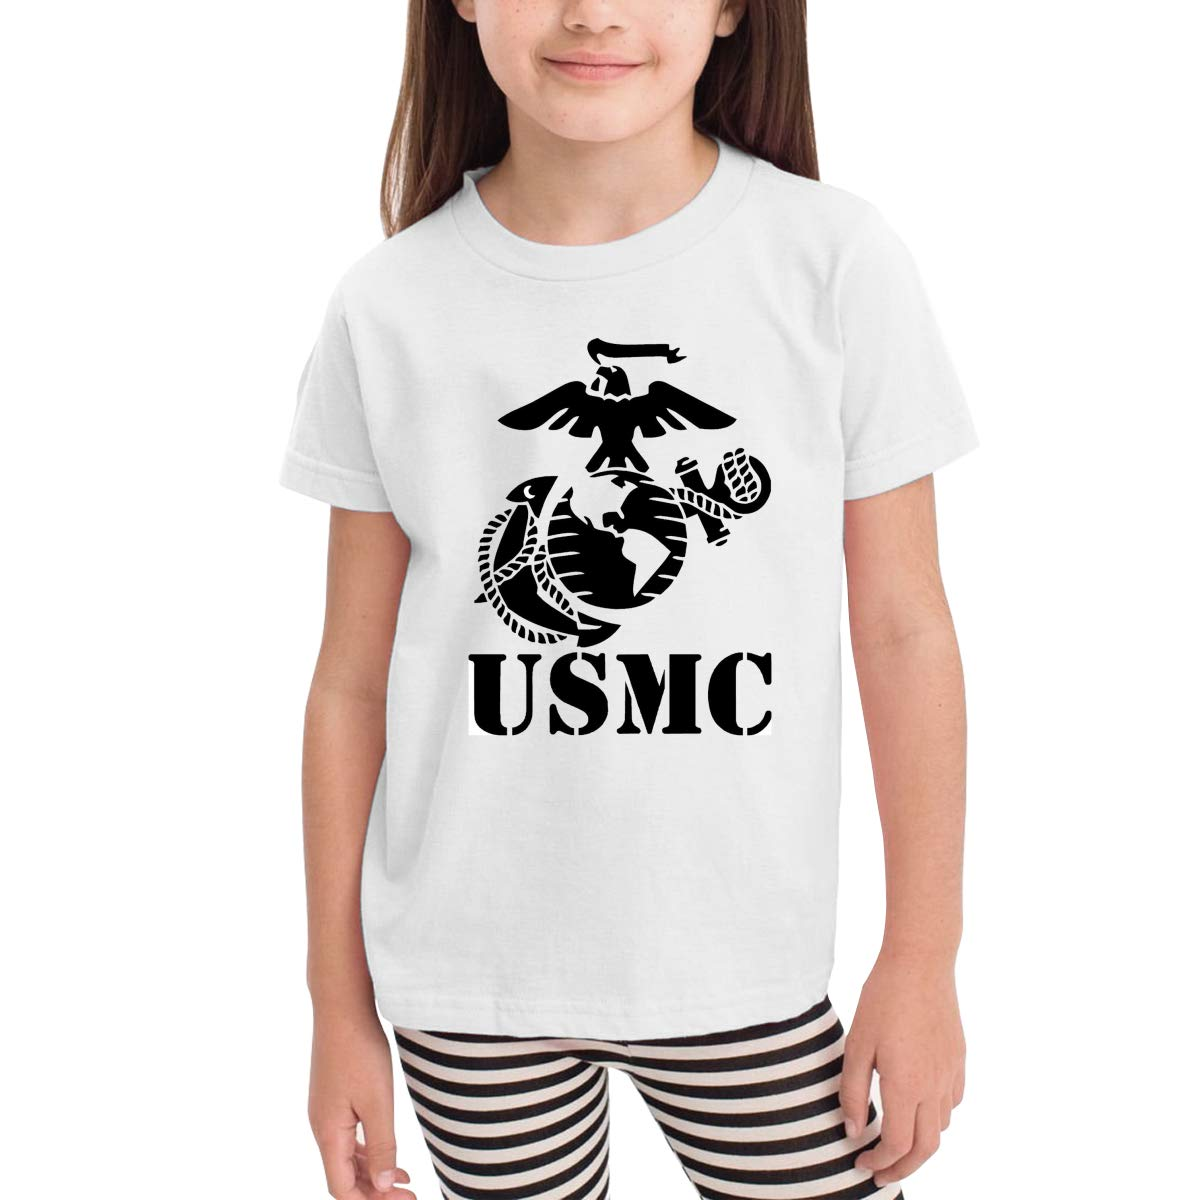 US Marine Corps Eagle Globe Anchor 100/% Cotton Toddler Baby Boys Girls Kids Short Sleeve T Shirt Top Tee Clothes 2-6 T